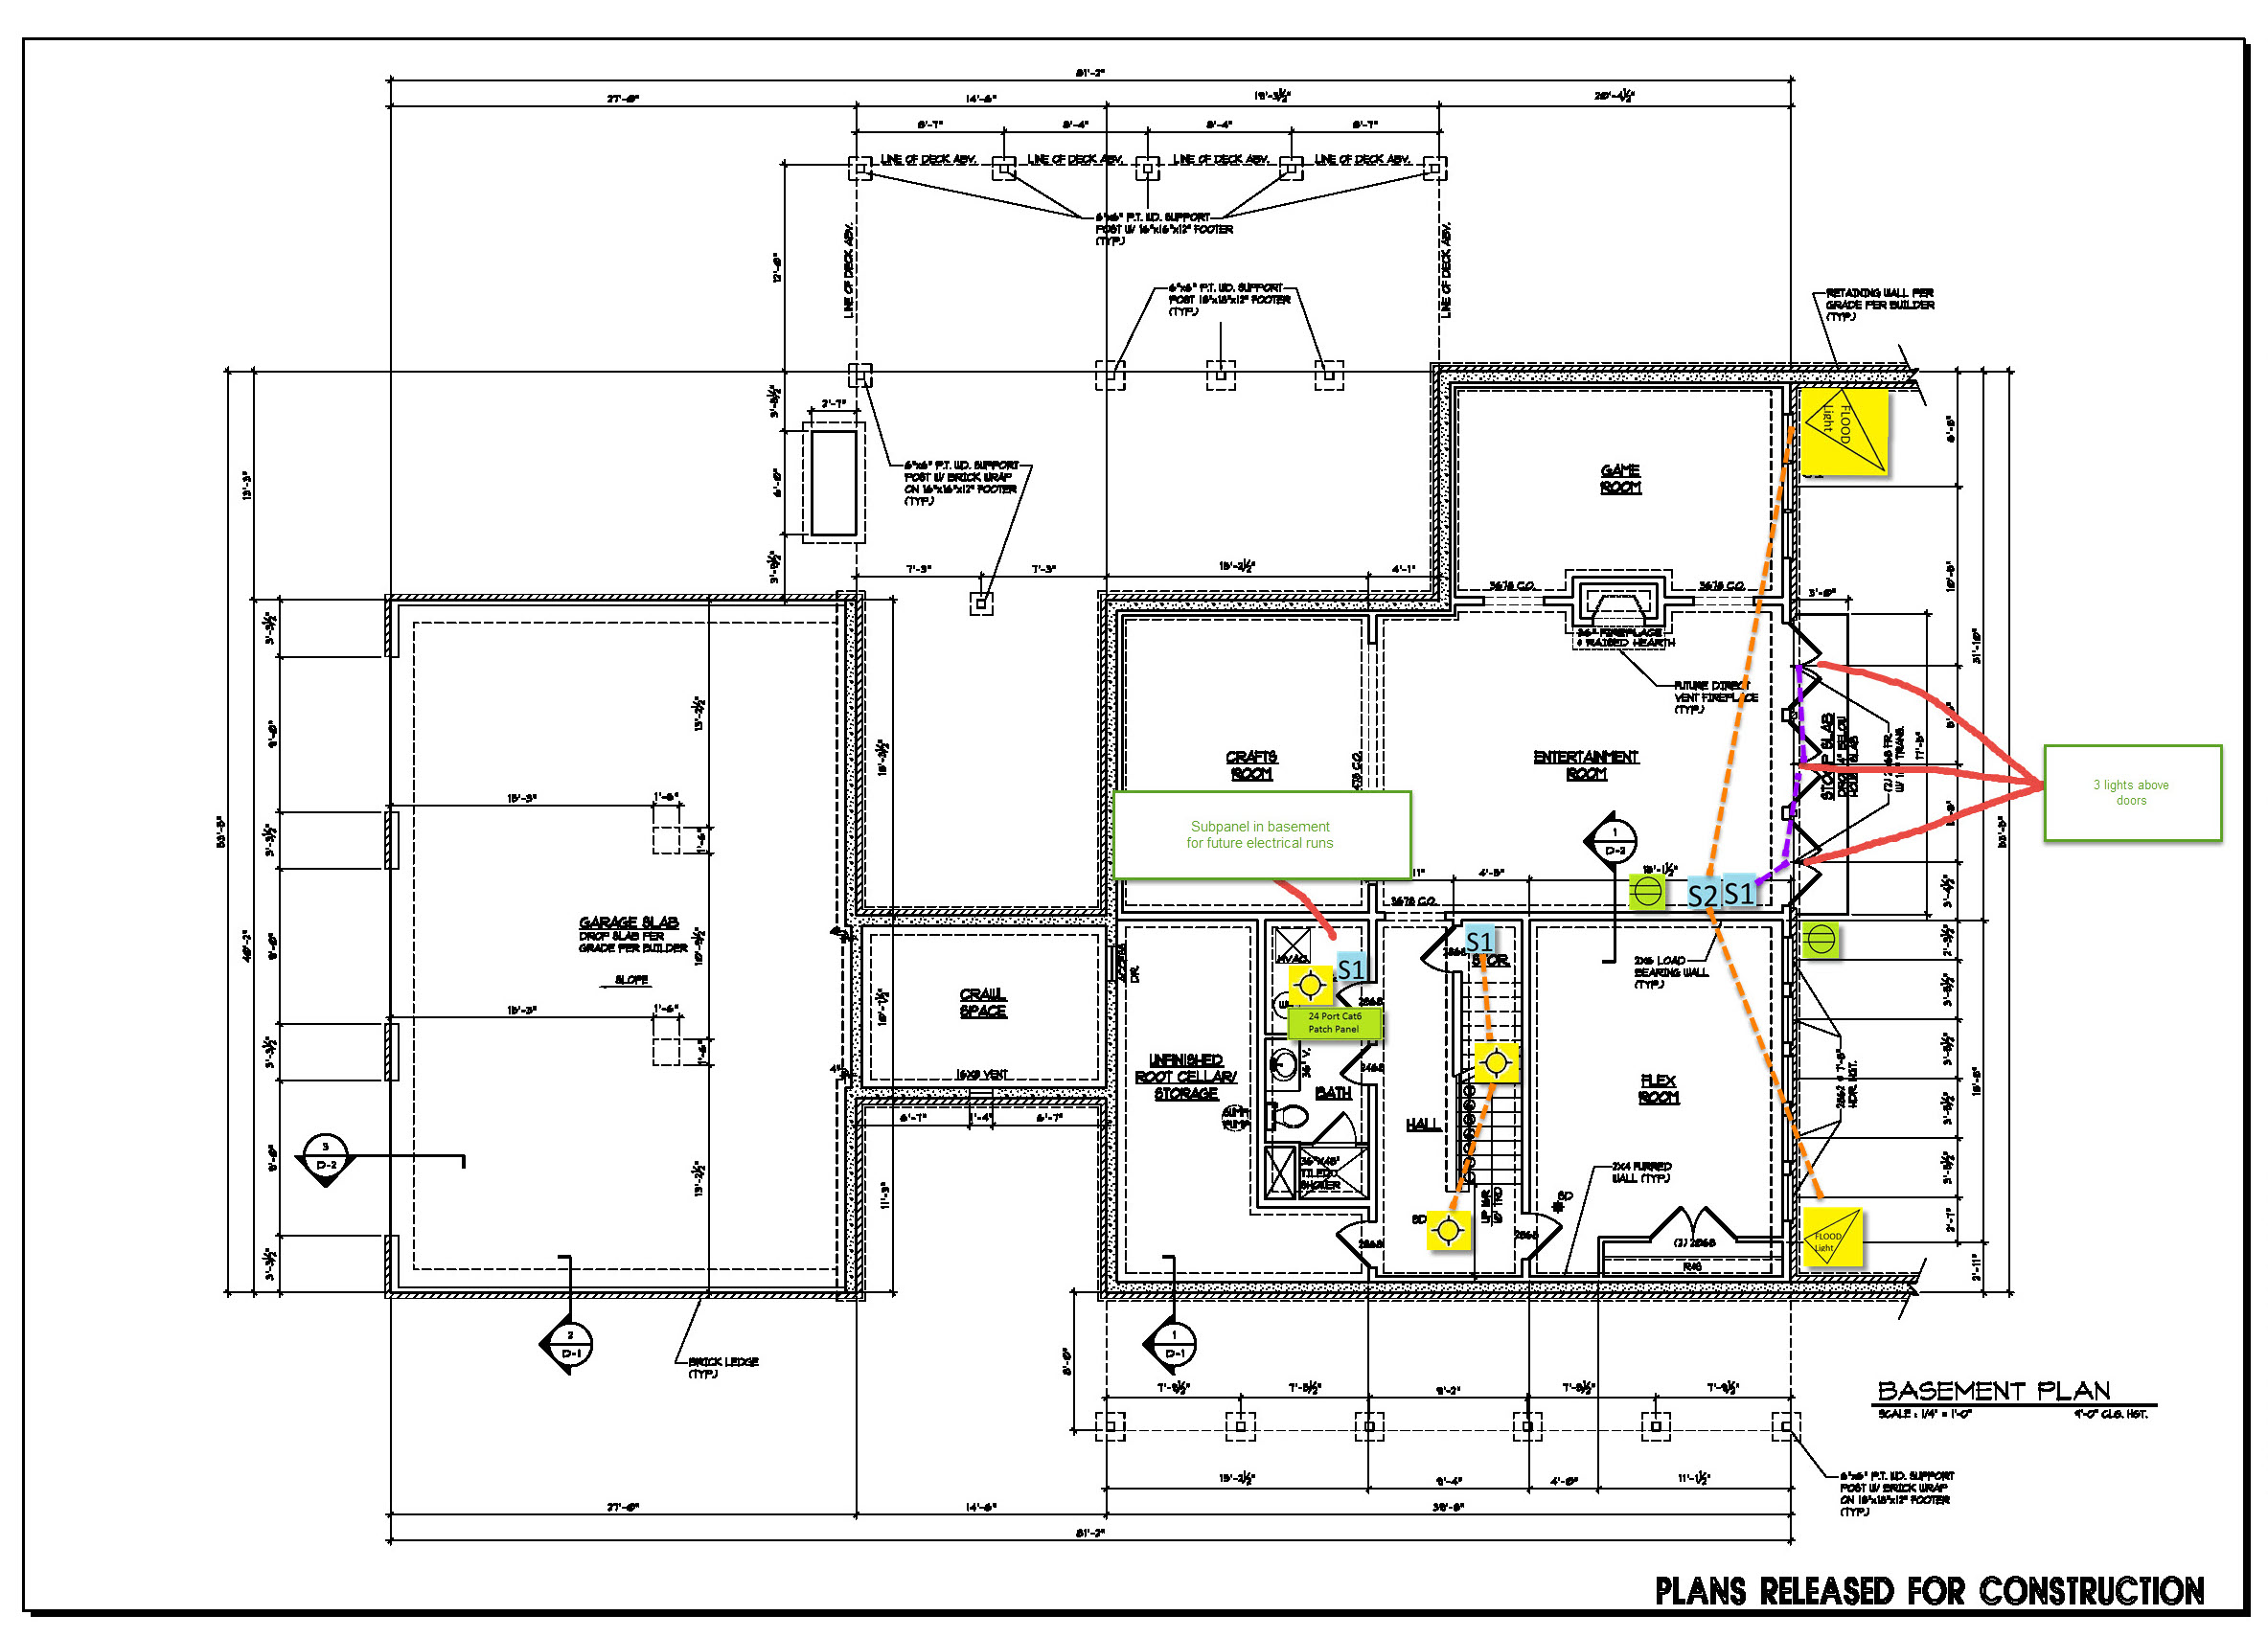 Electrical Plan For Basement